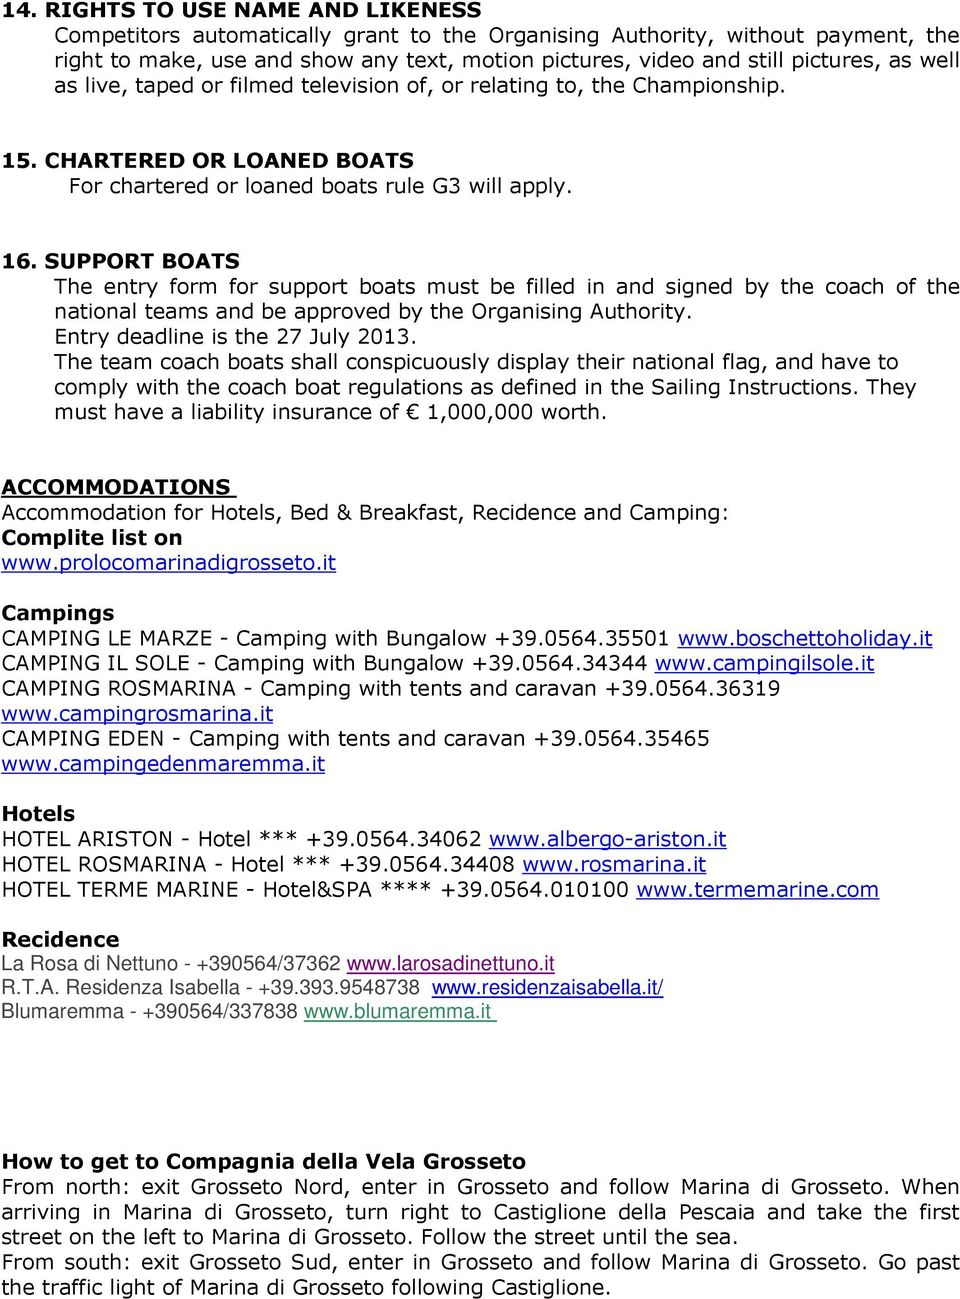 SUPPORT BOATS The entry form for support boats must be filled in and signed by the coach of the national teams and be approved by the Organising Authority. Entry deadline is the 27 July 2013.